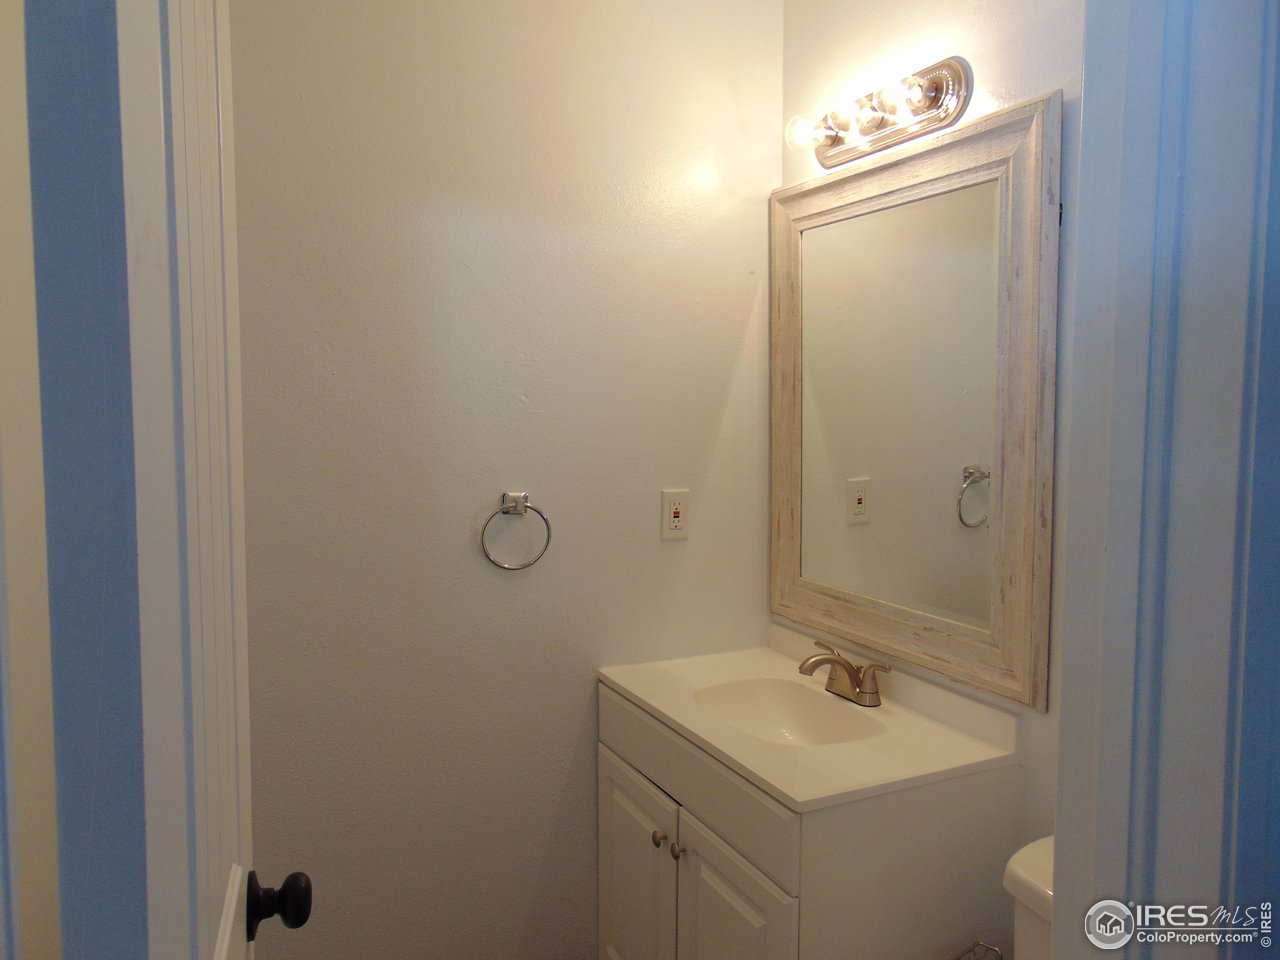 New vanity, mirror and toilet in the half bath